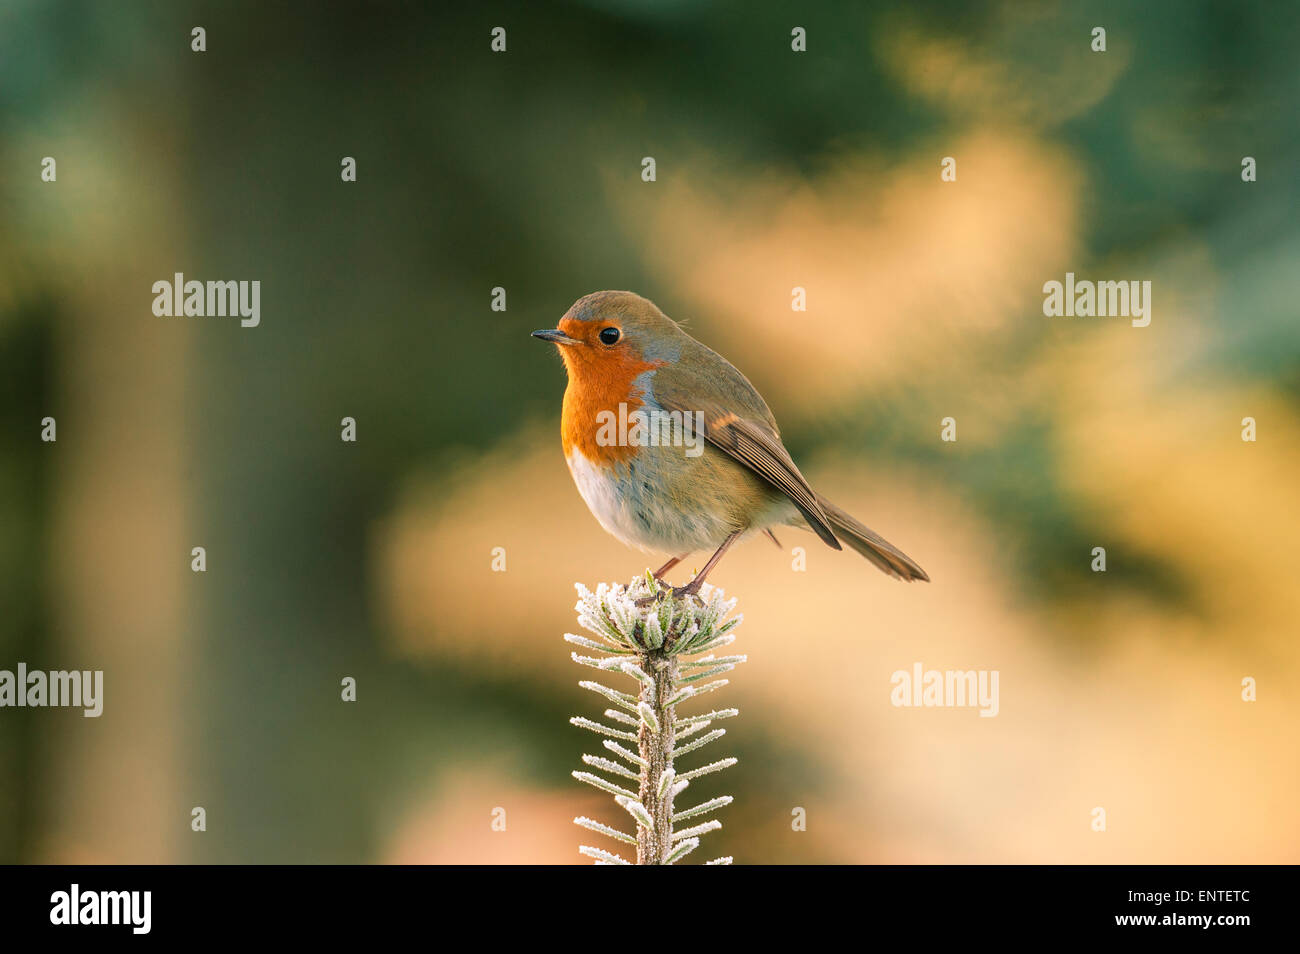 Robin, (Erithacus rubecula), standing on top of a branch in winter, UK - Stock Image